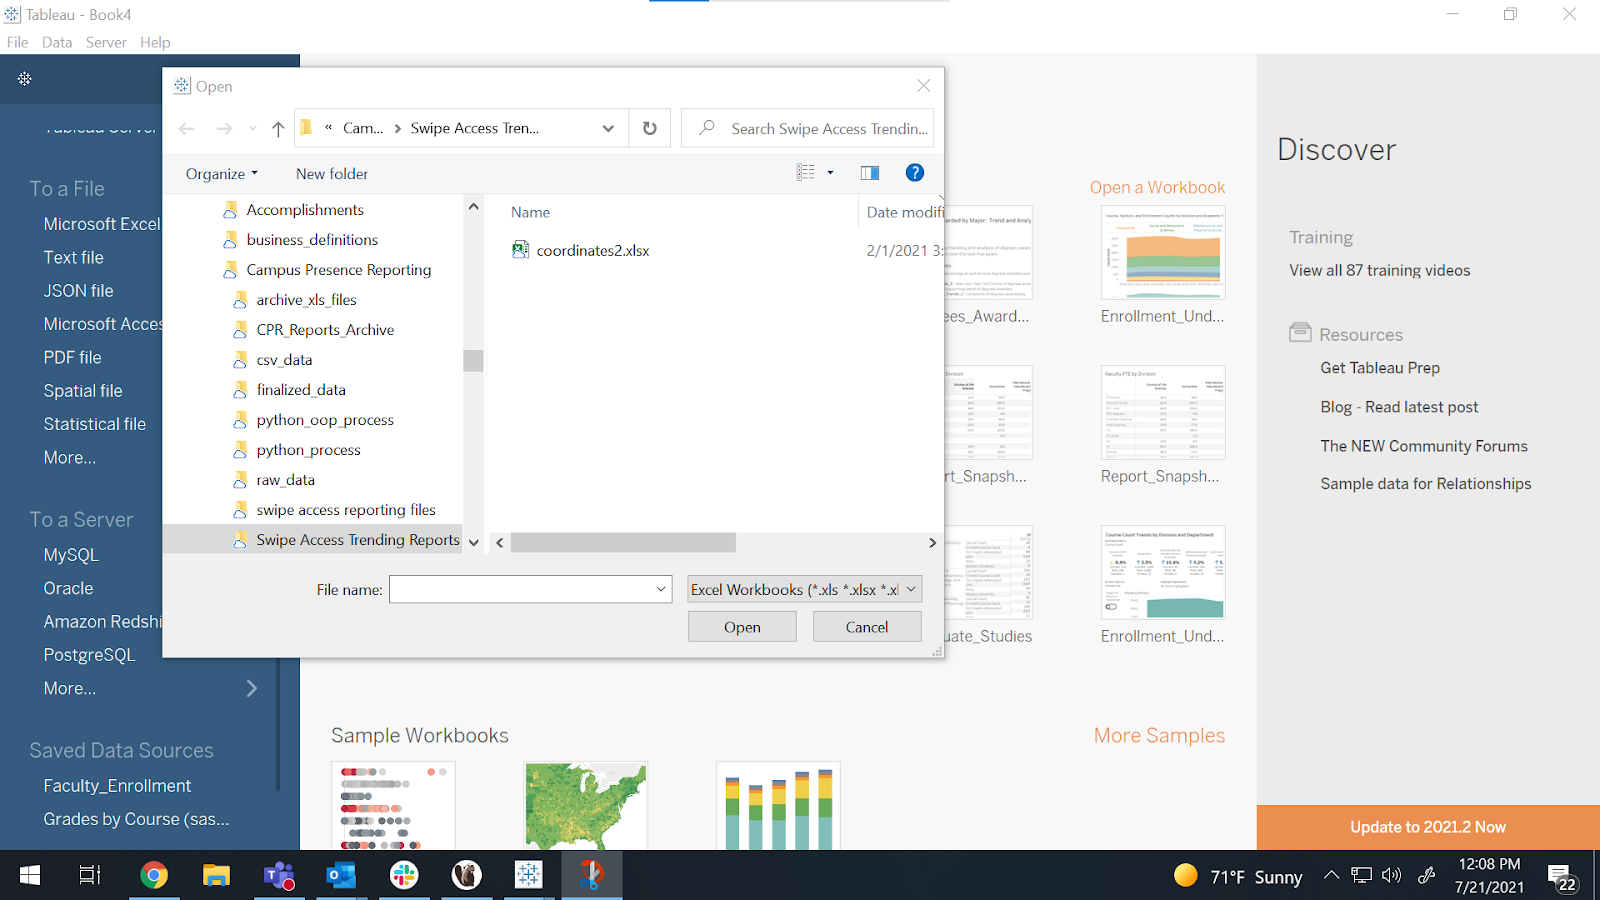 data connection pane: select Microsoft Excel from the list of options